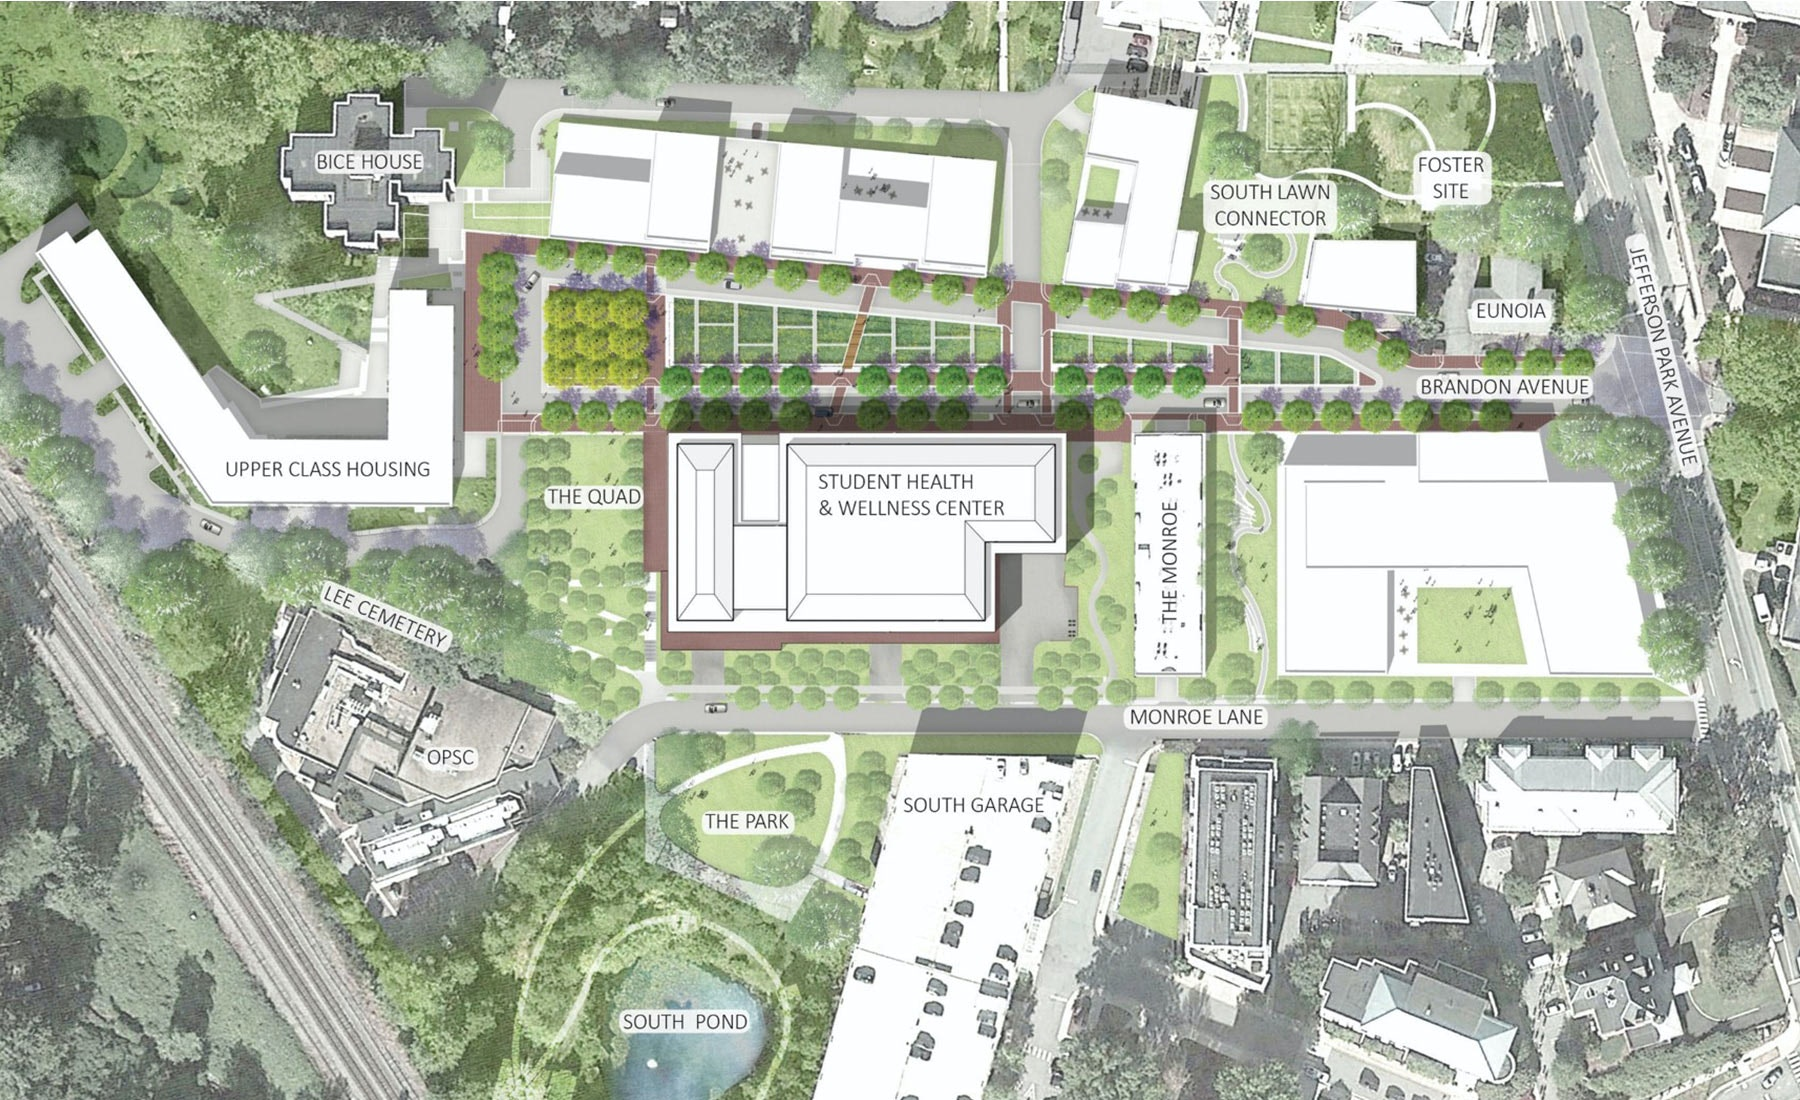 Brandon Avenue Corridor and Context Map for the Student Health and Wellness Center at UVA.